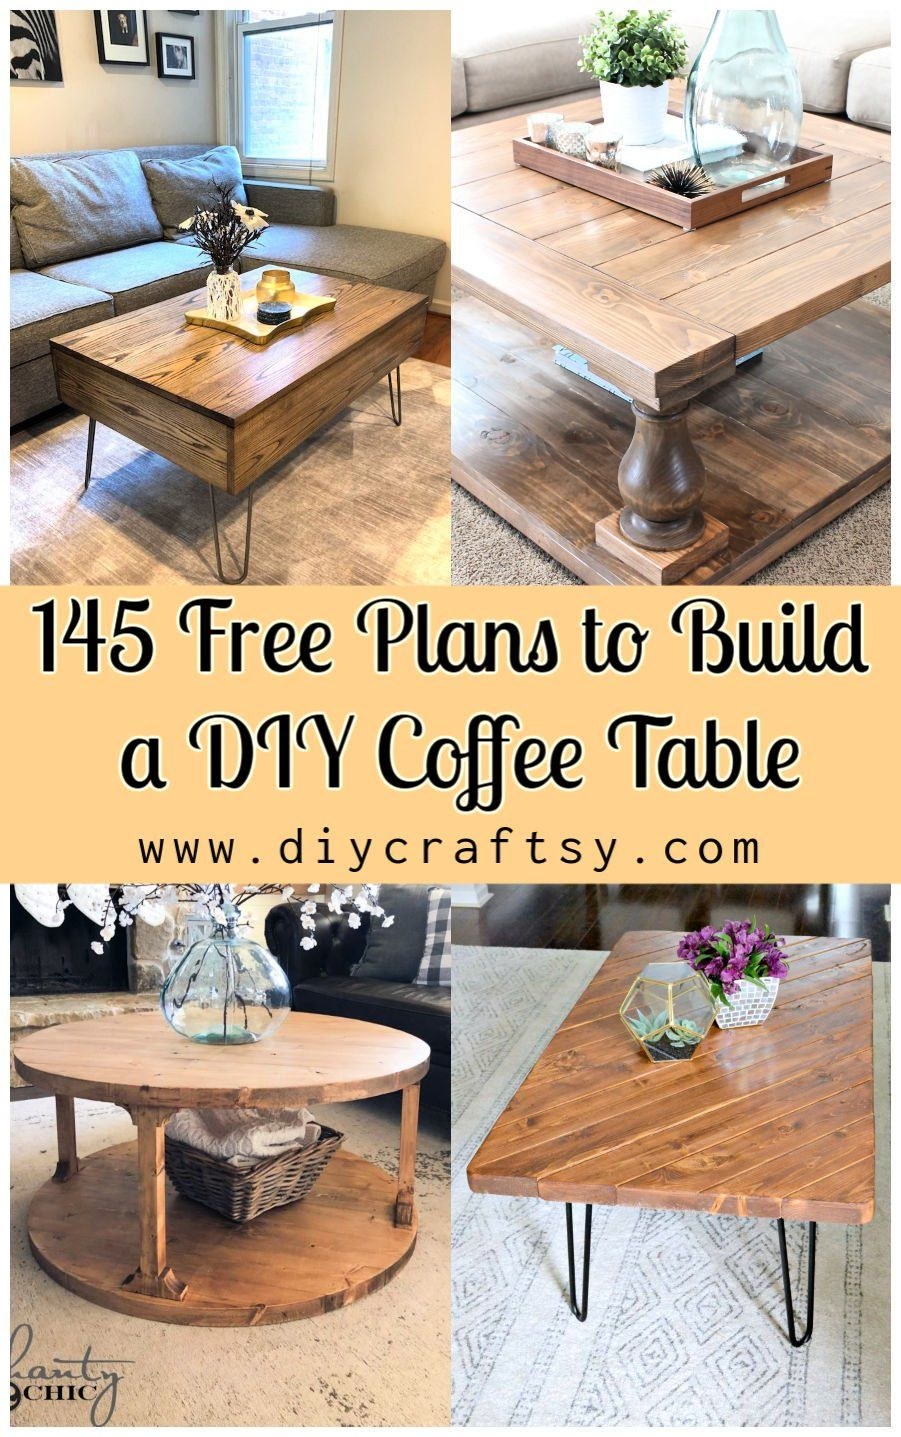 Learn How To Diy Coffee Table Check Our 150 Free Diy Coffee Table